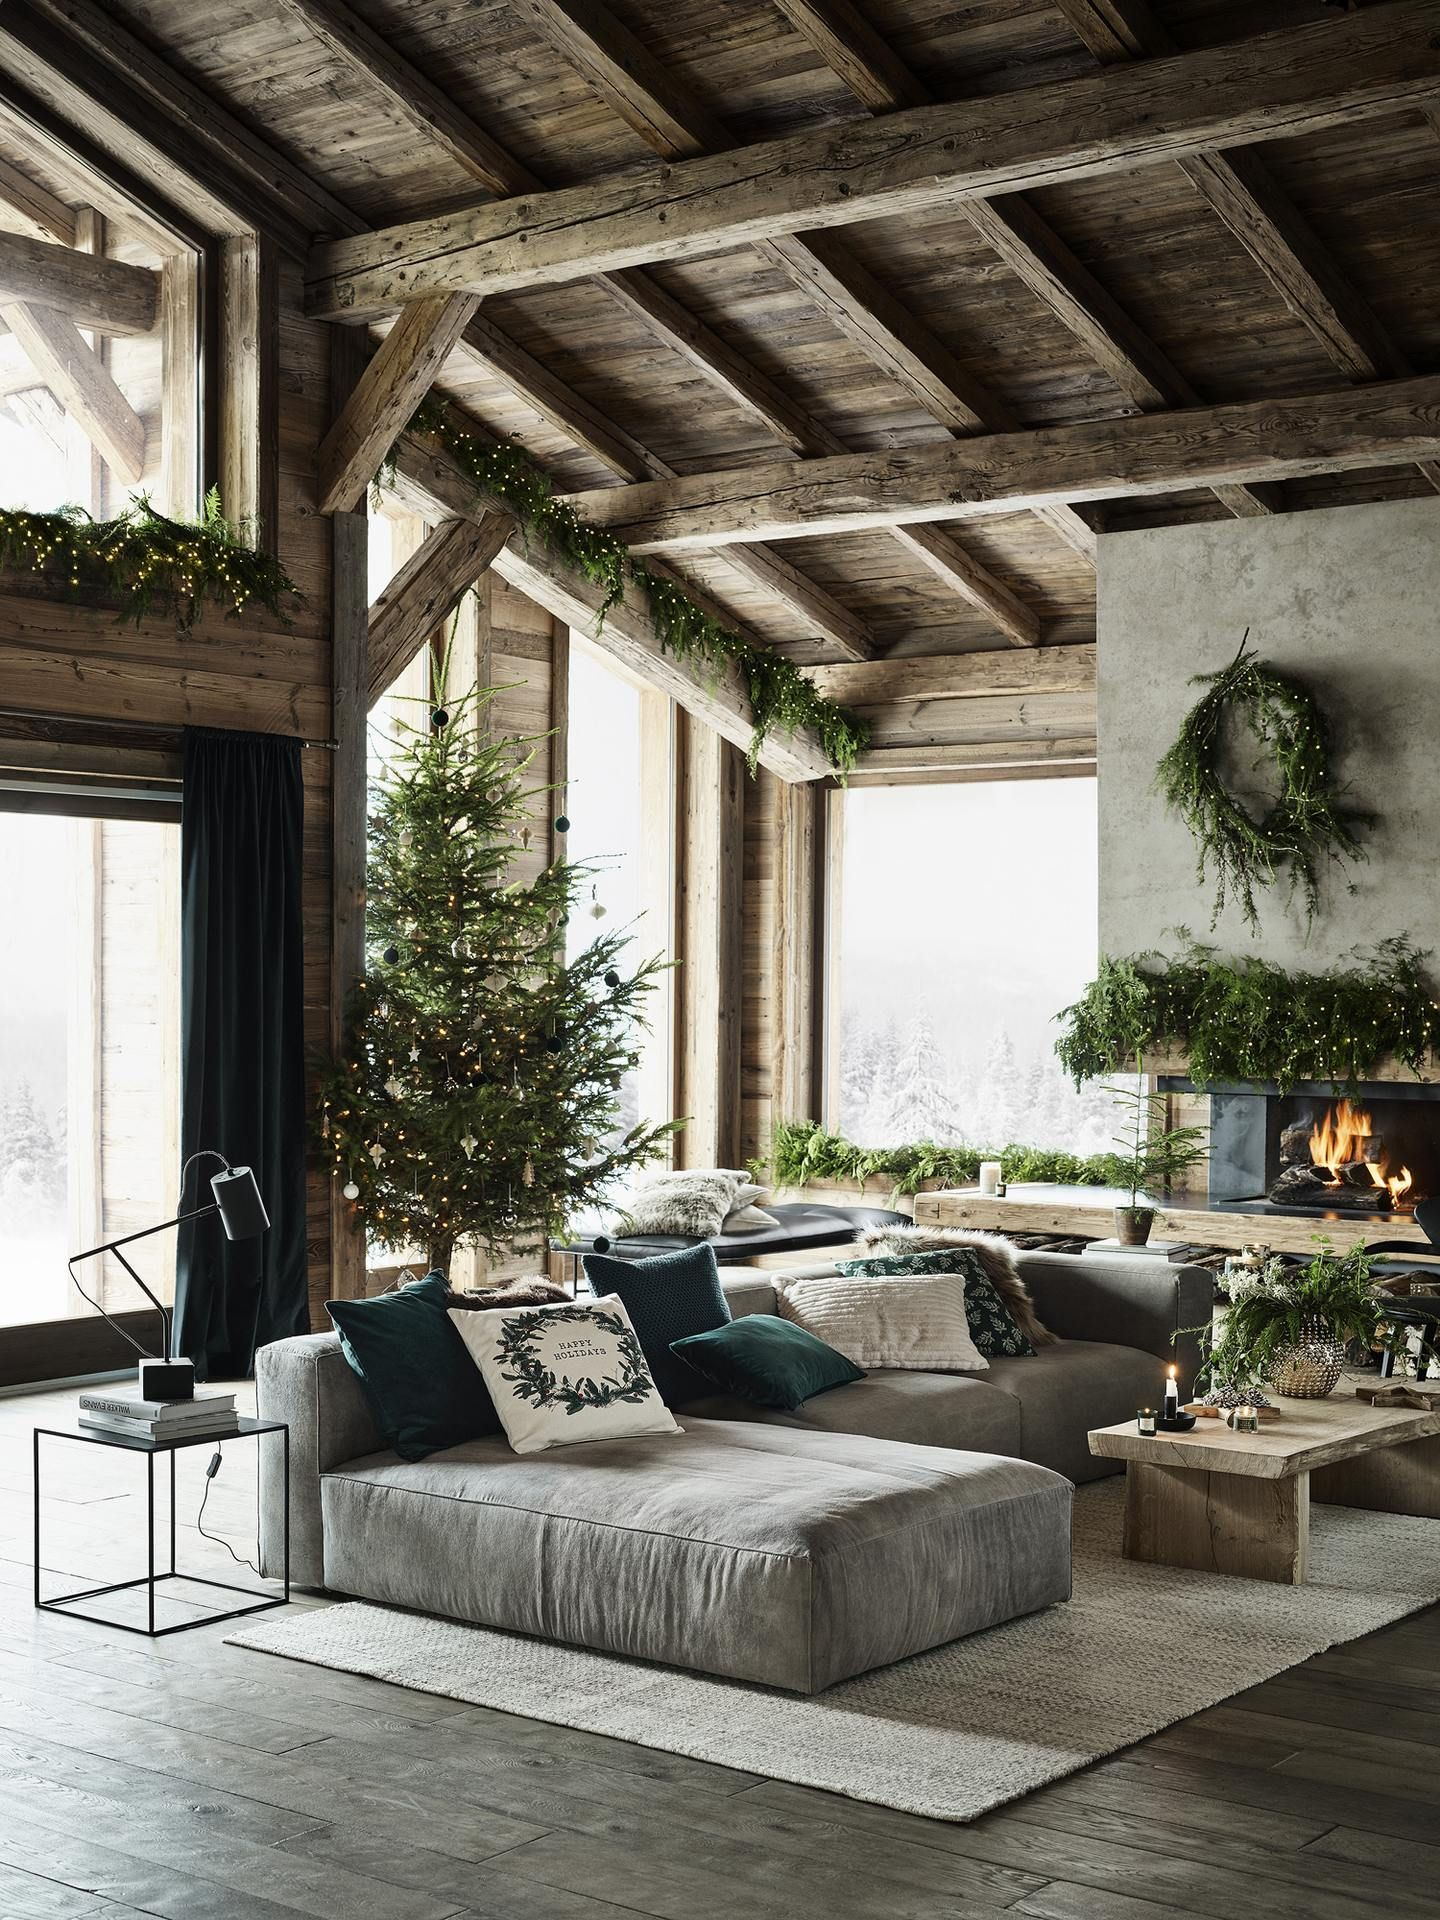 home christmas living room in  barn house source by daliadeadface also vintage industrial design ideas for your loft so cozy pinterest rh